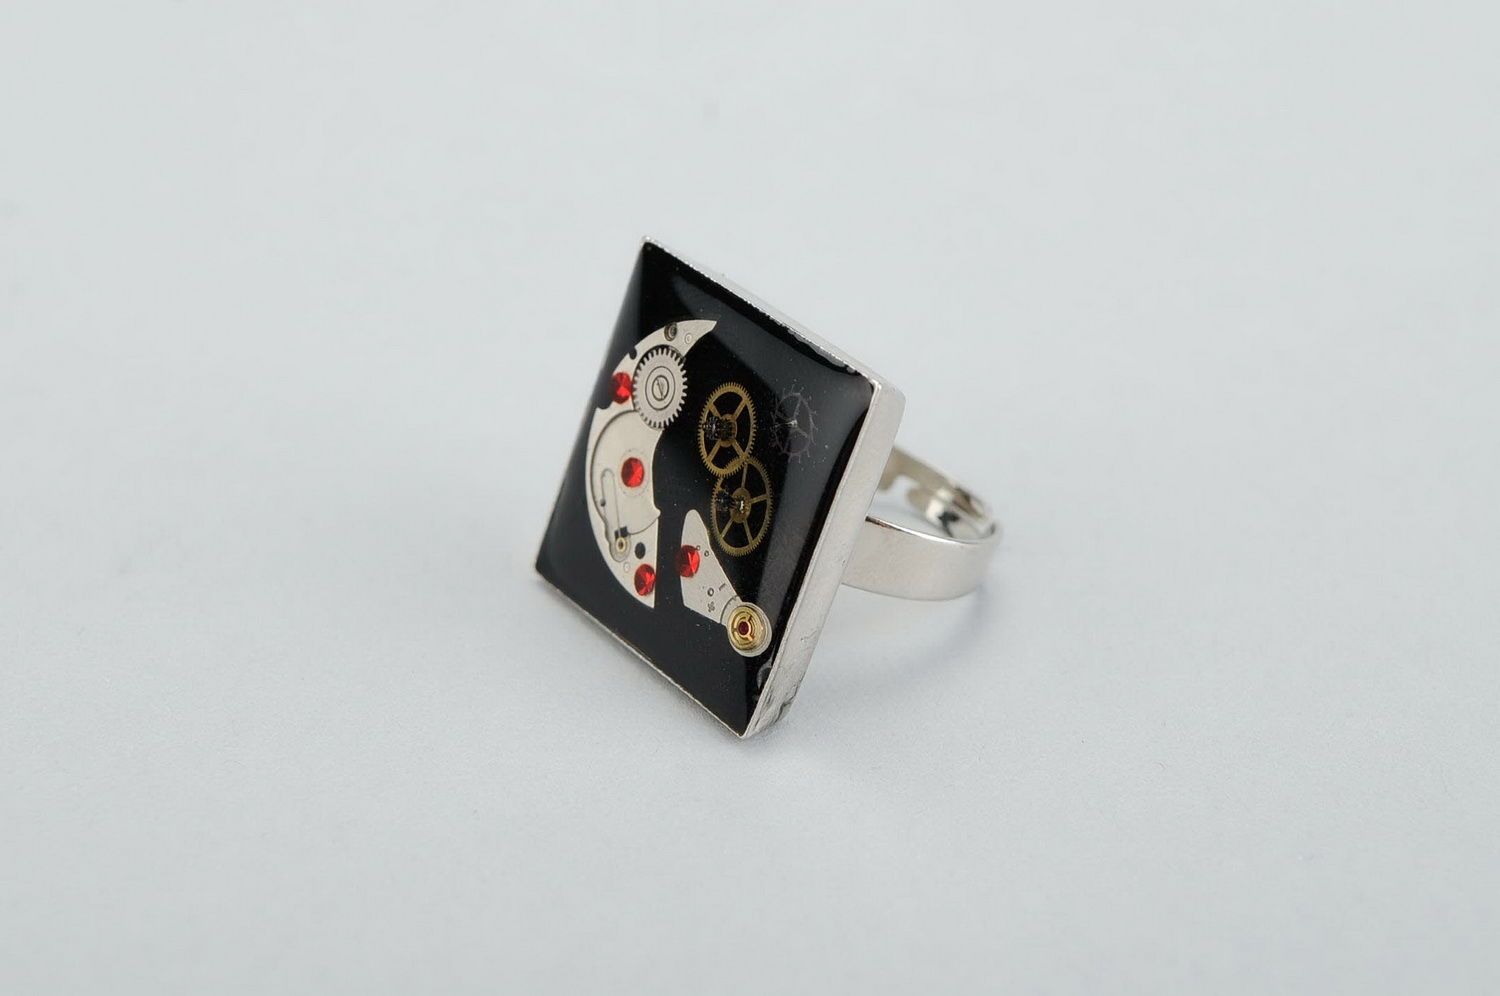 Steampunk ring photo 1